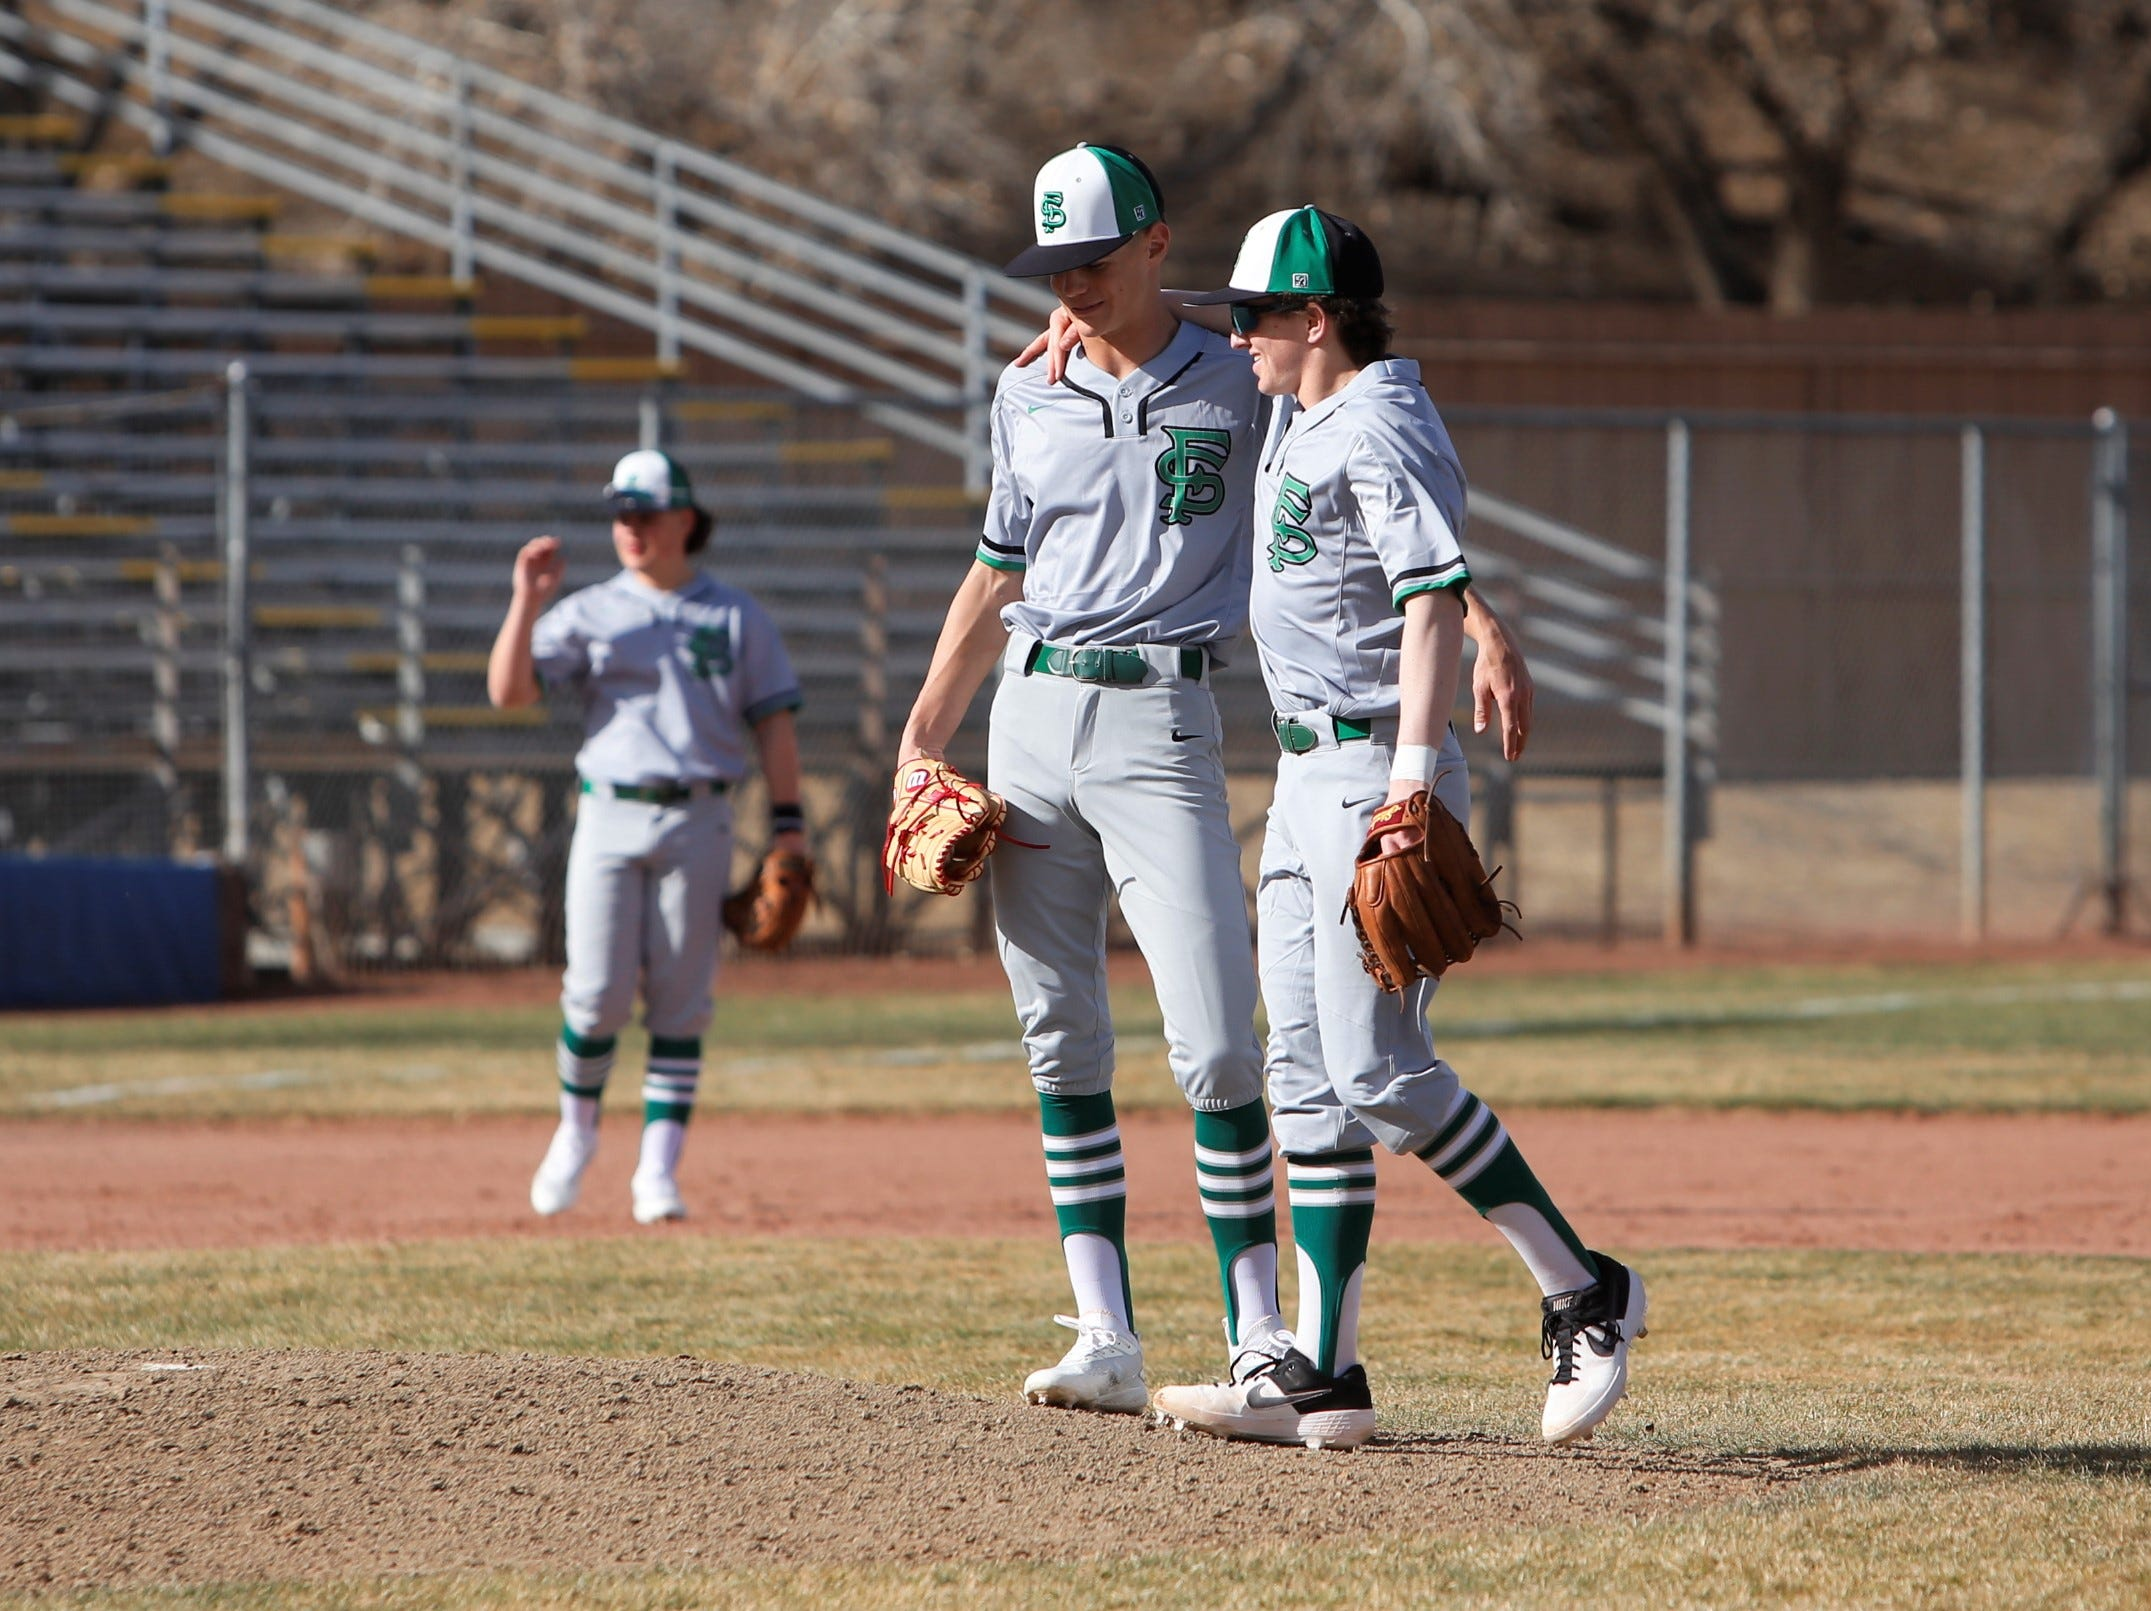 Farmington's Danny Carpenter, right, meets with Bradon Zastrow on the mound in-between at-bats against Los Lunas during Thursday's FHS Scorpion Invitational tournament game at Ricketts Park in Farmington.